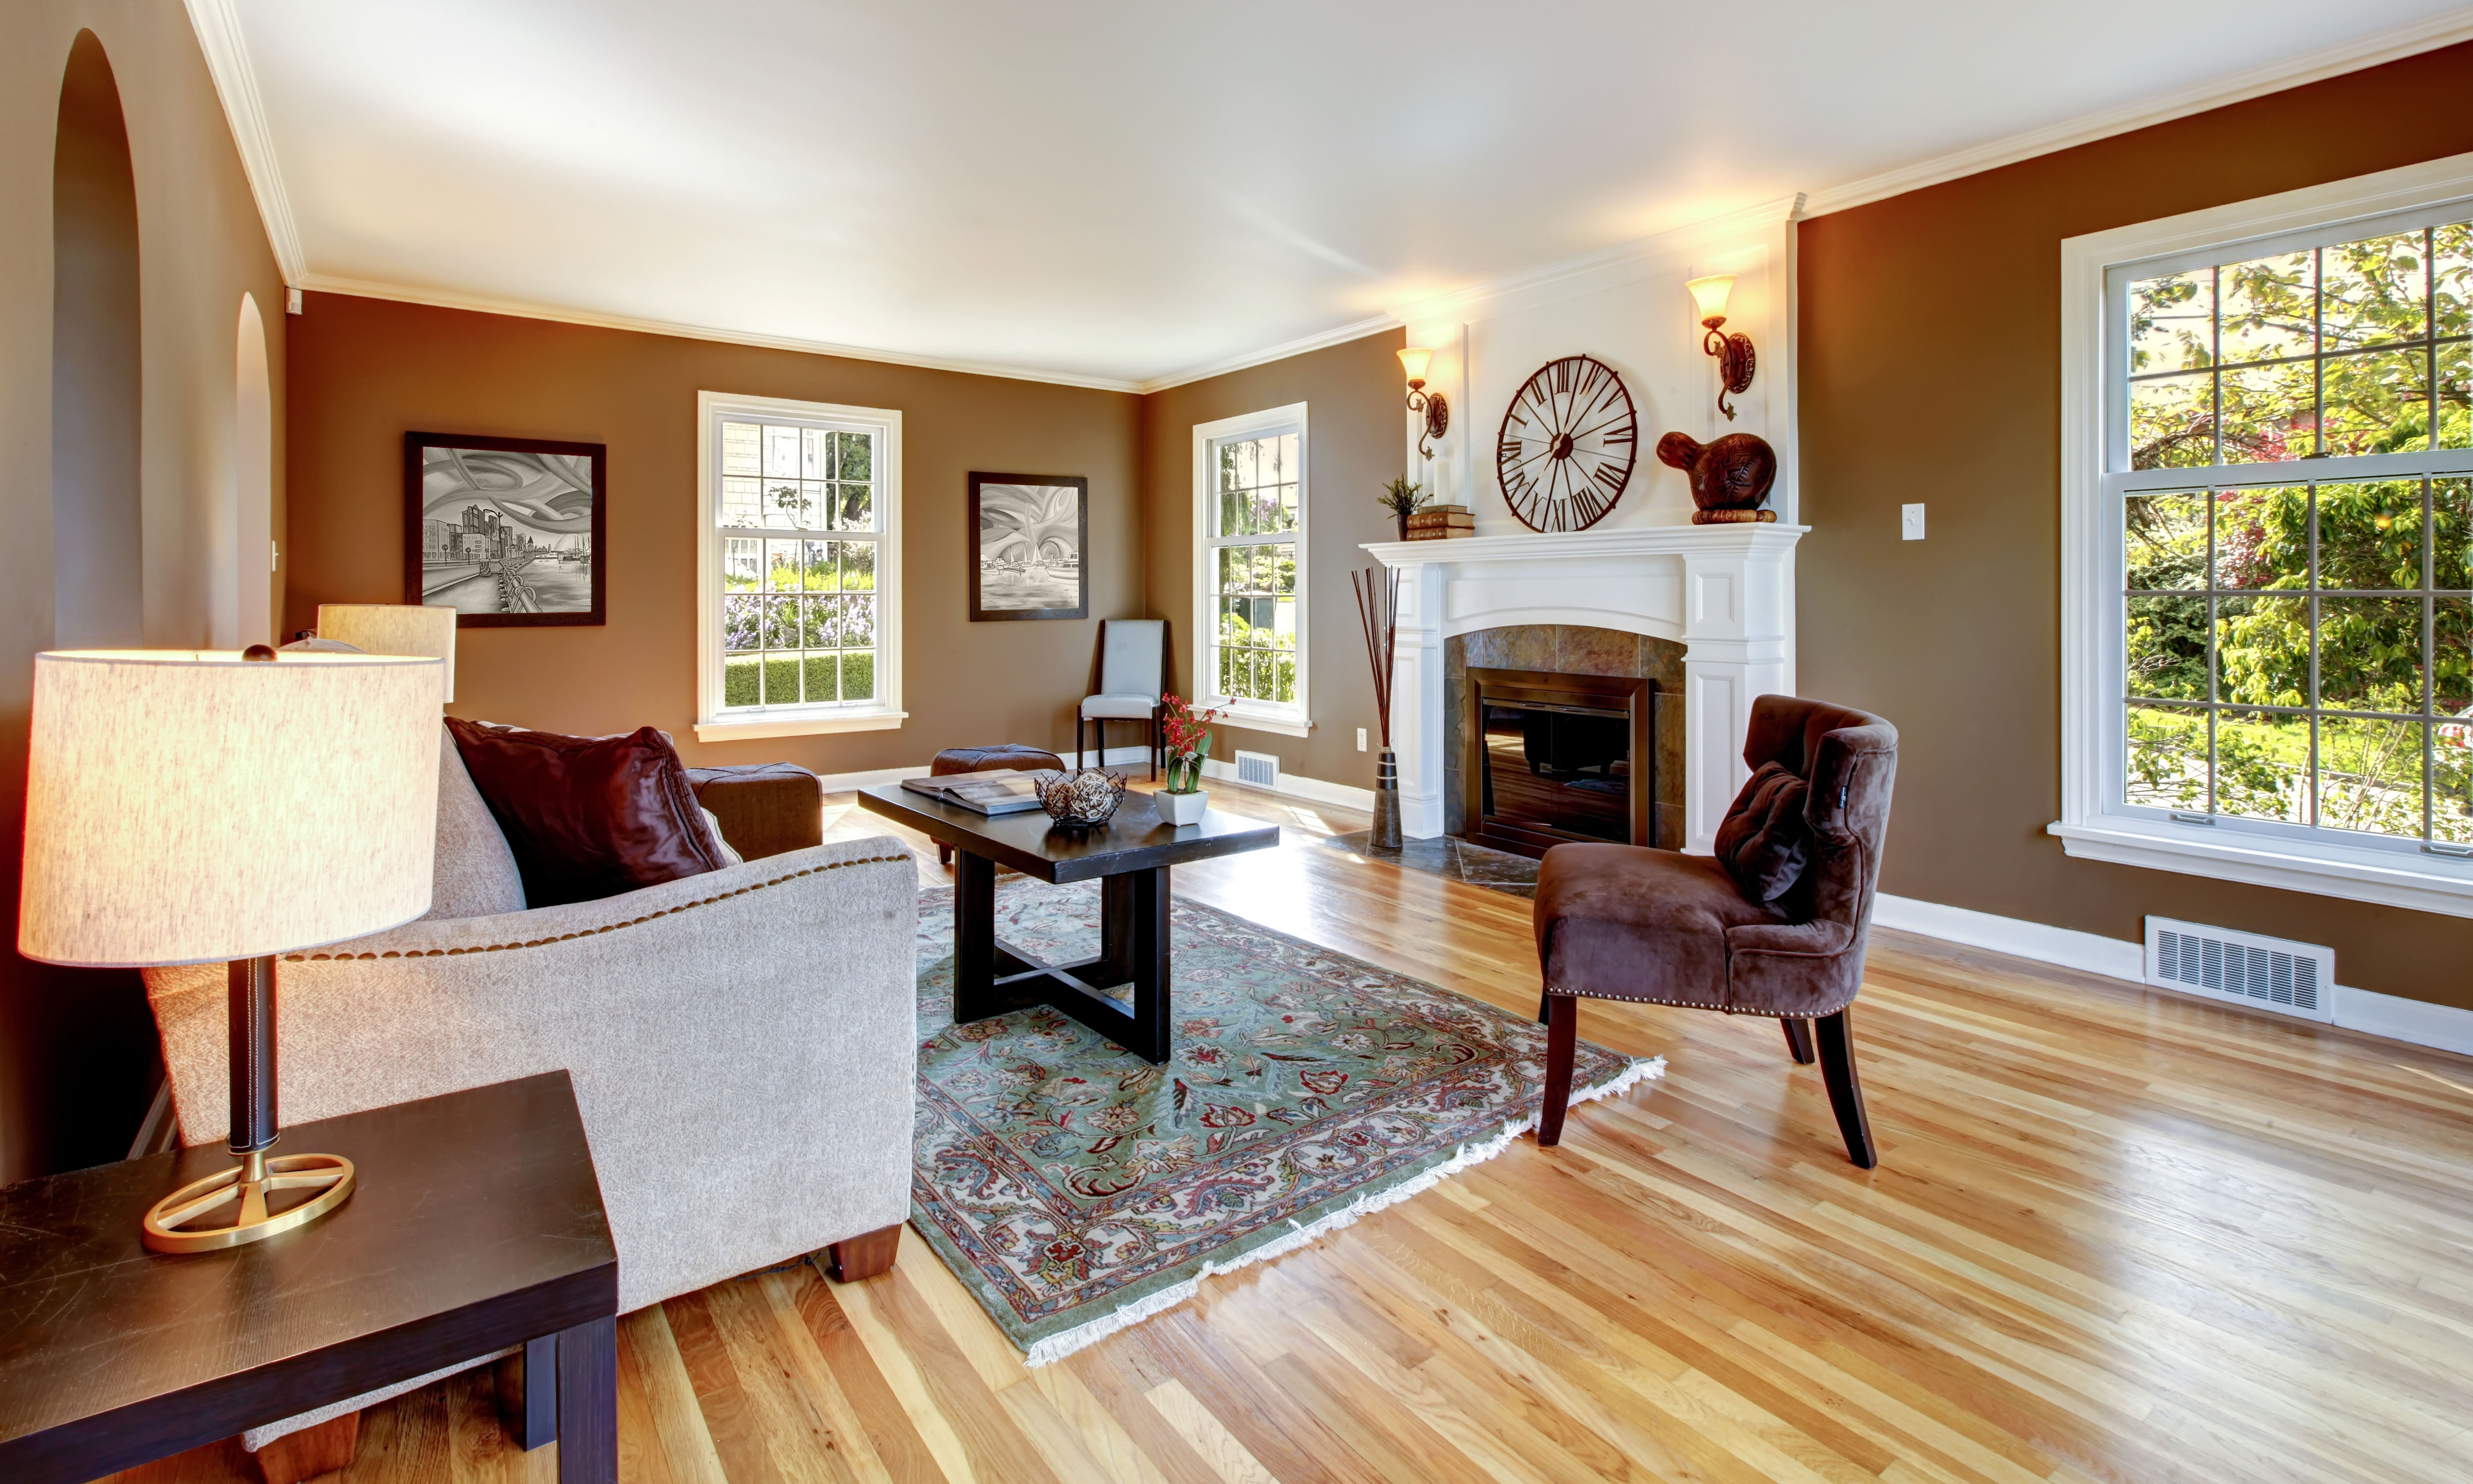 Remodeling   Latest Projects   Remodeling Company   About Us ...